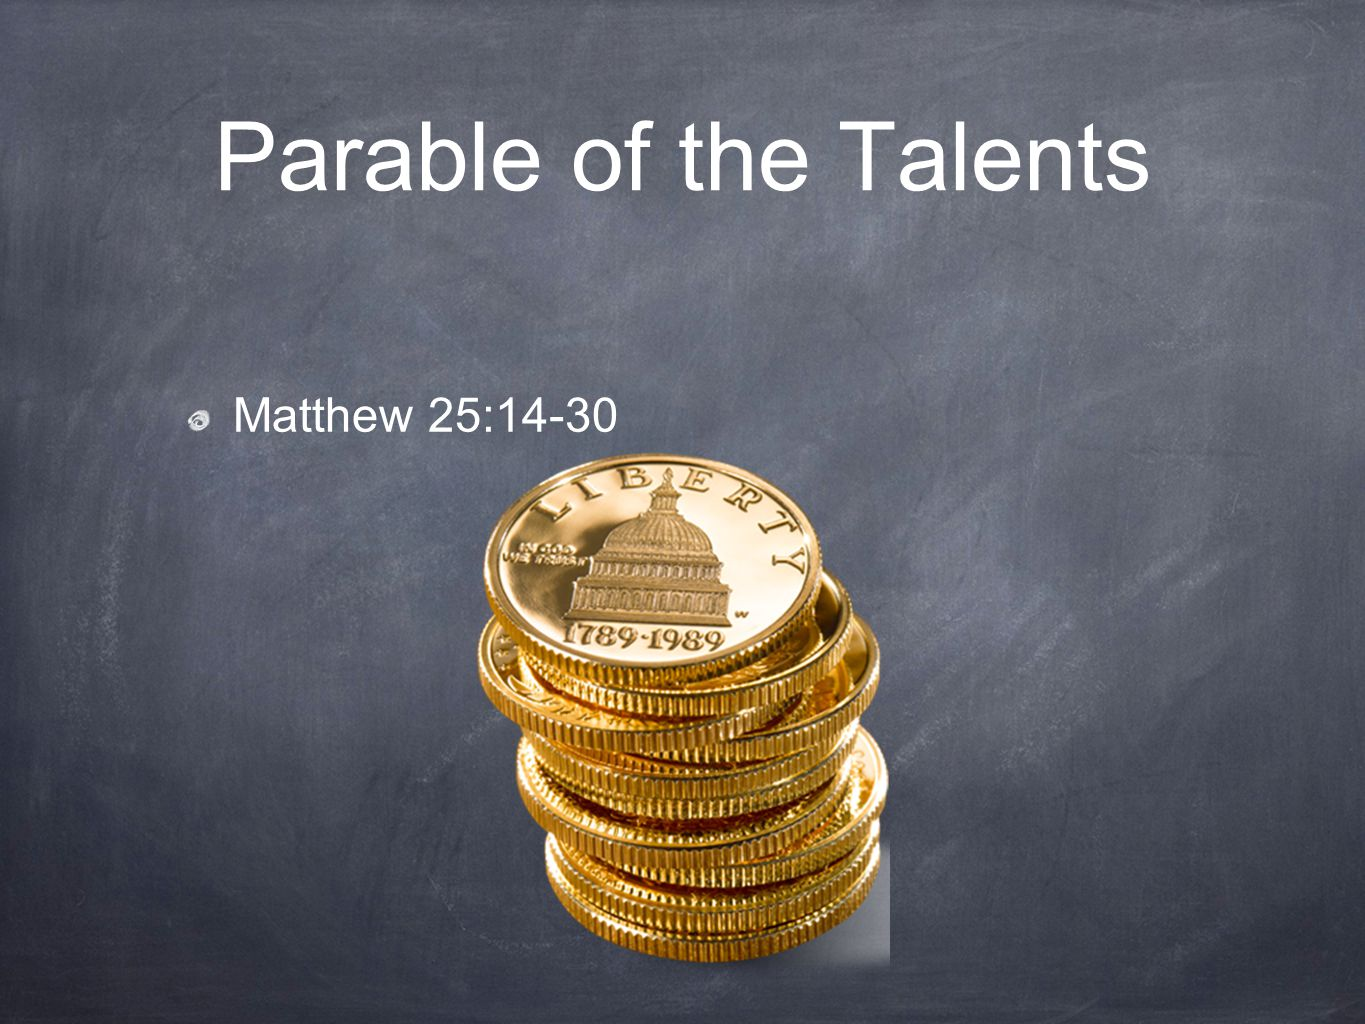 Parable of the Talents Matthew 25:14-30